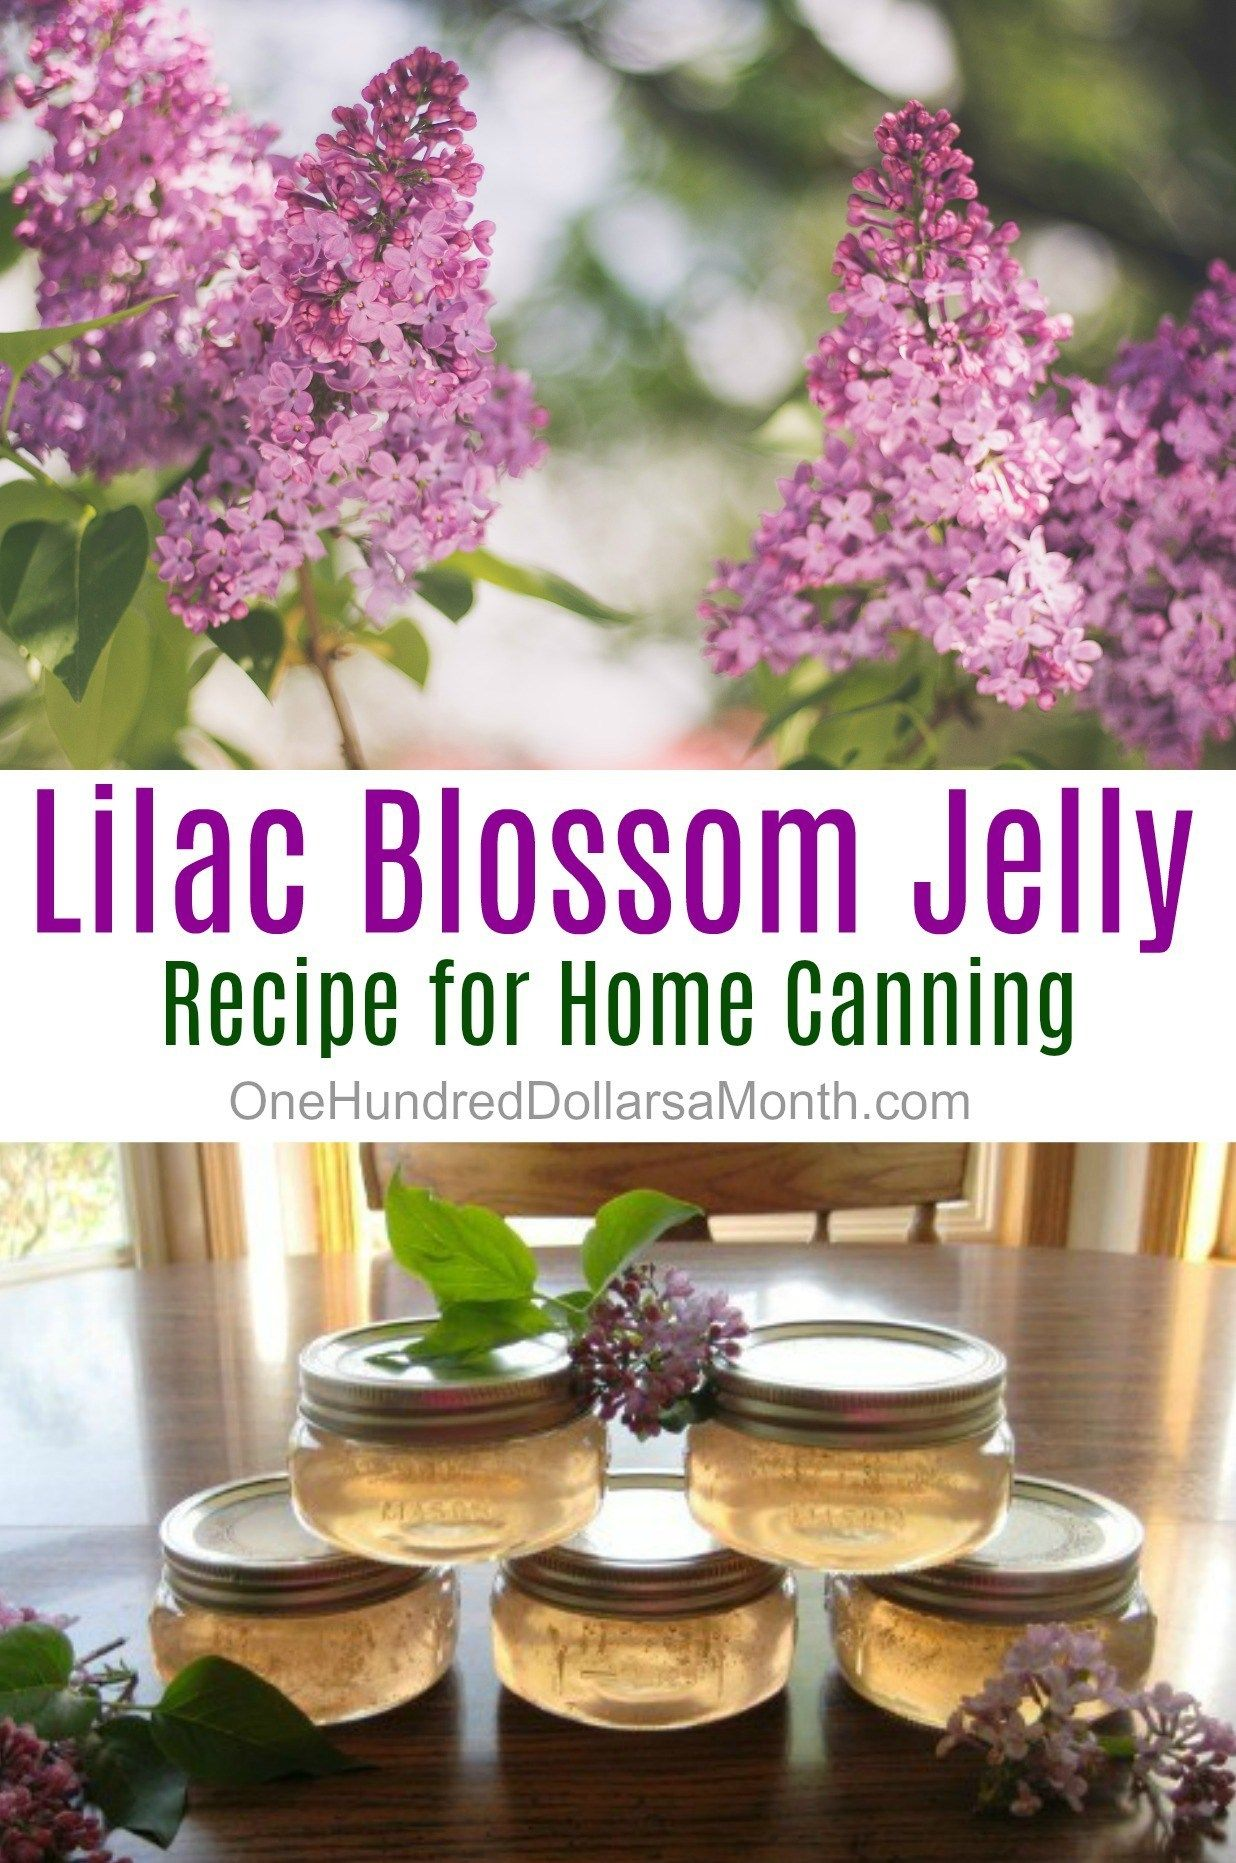 Canning 101 Lilac Blossom Jelly One Hundred Dollars A Month Jelly Recipes Home Canning Recipes Lilac Blossom